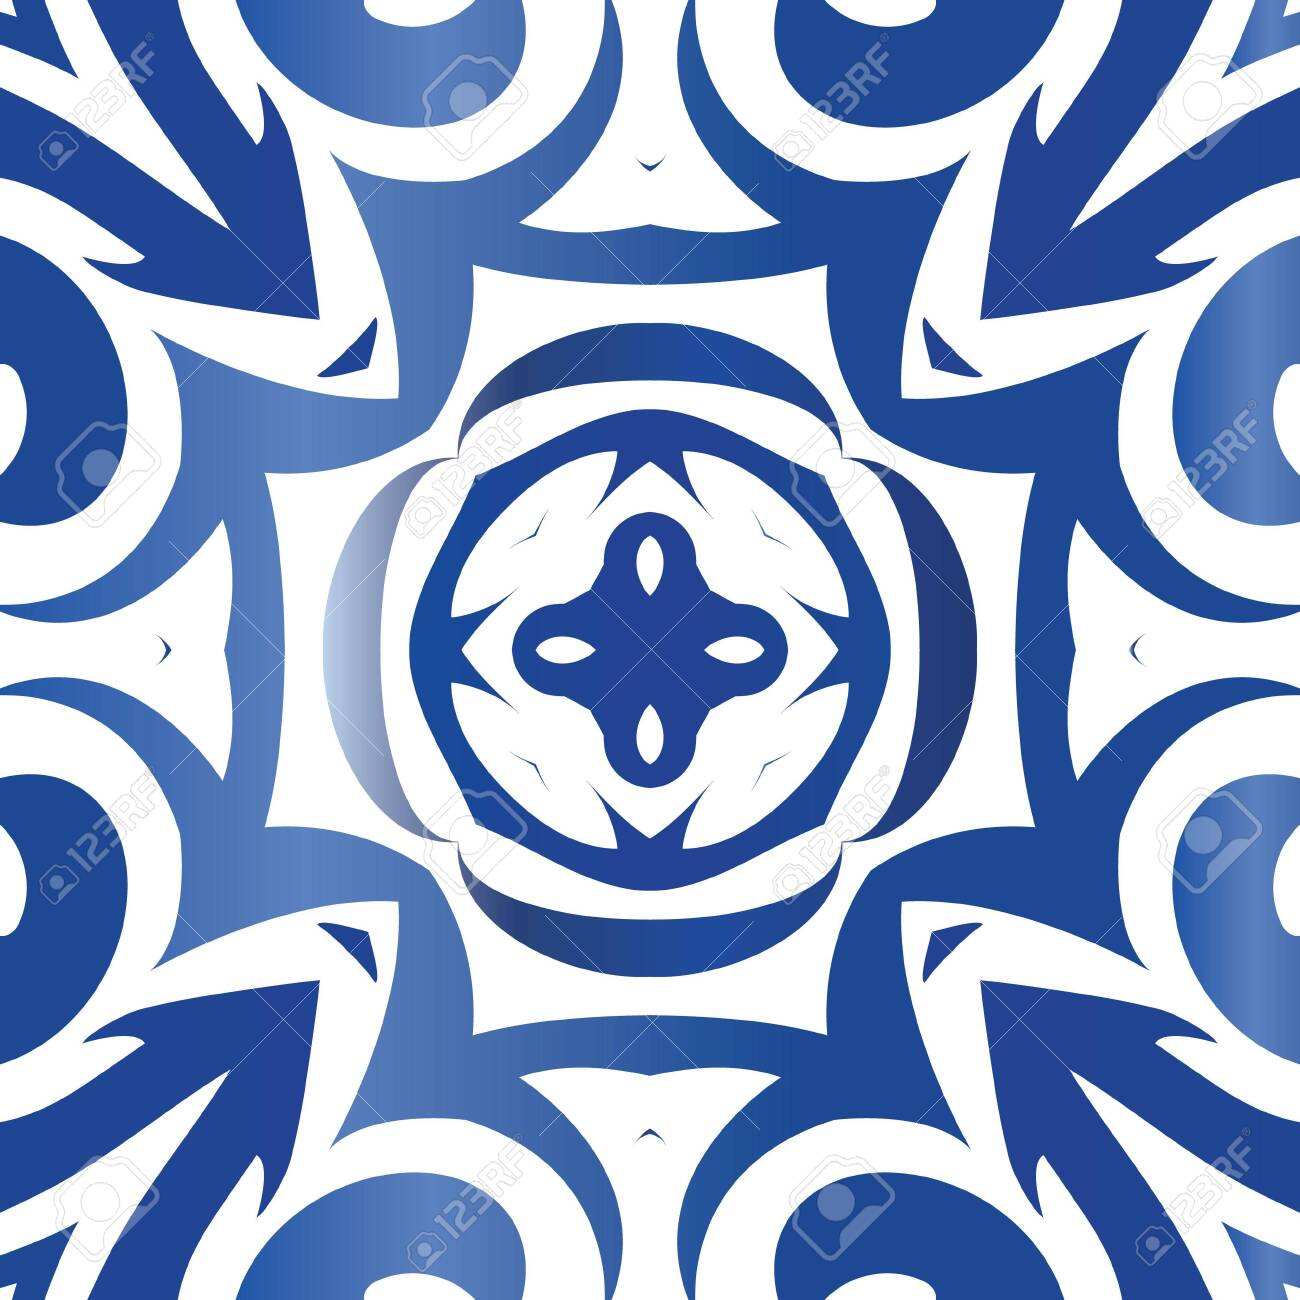 Ceramic tiles azulejo portugal. Vector seamless pattern texture. Colored design. Blue ethnic background for T-shirts, scrapbooking, linens, smartphone cases or bags. - 149476081